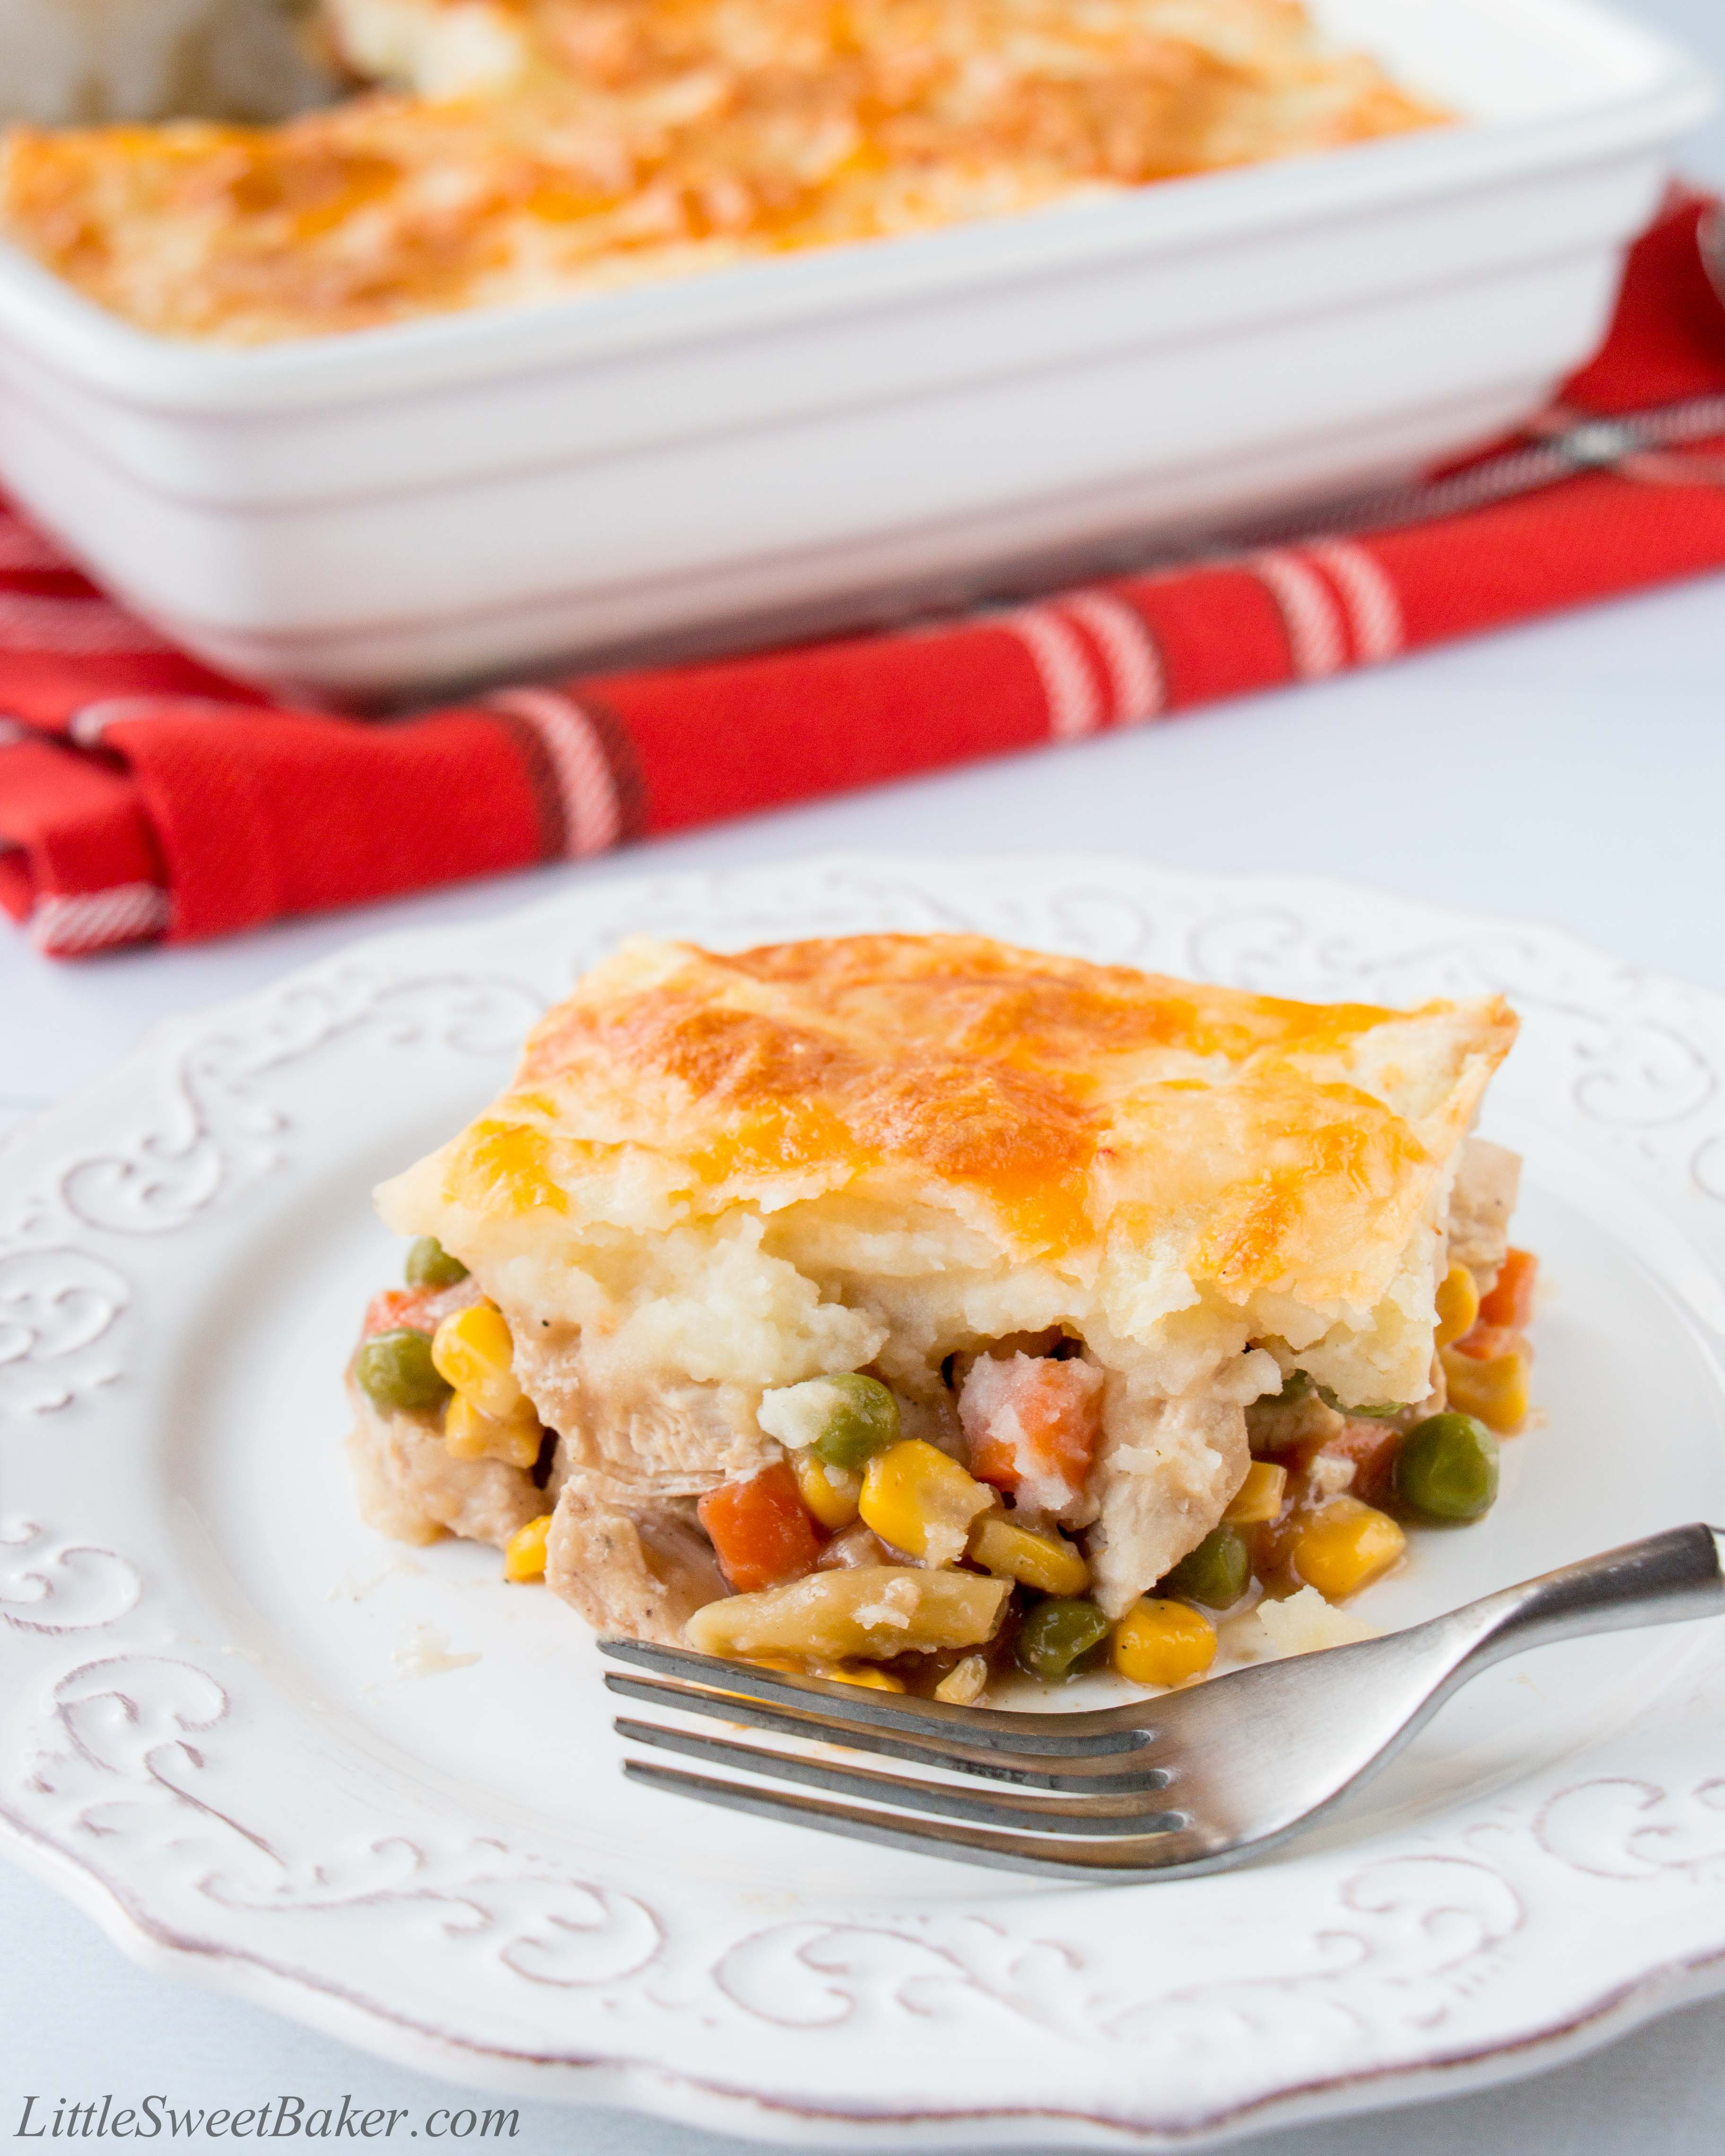 Forum on this topic: Roasted Vegetable and Turkey Shepherds Pie, roasted-vegetable-and-turkey-shepherds-pie/